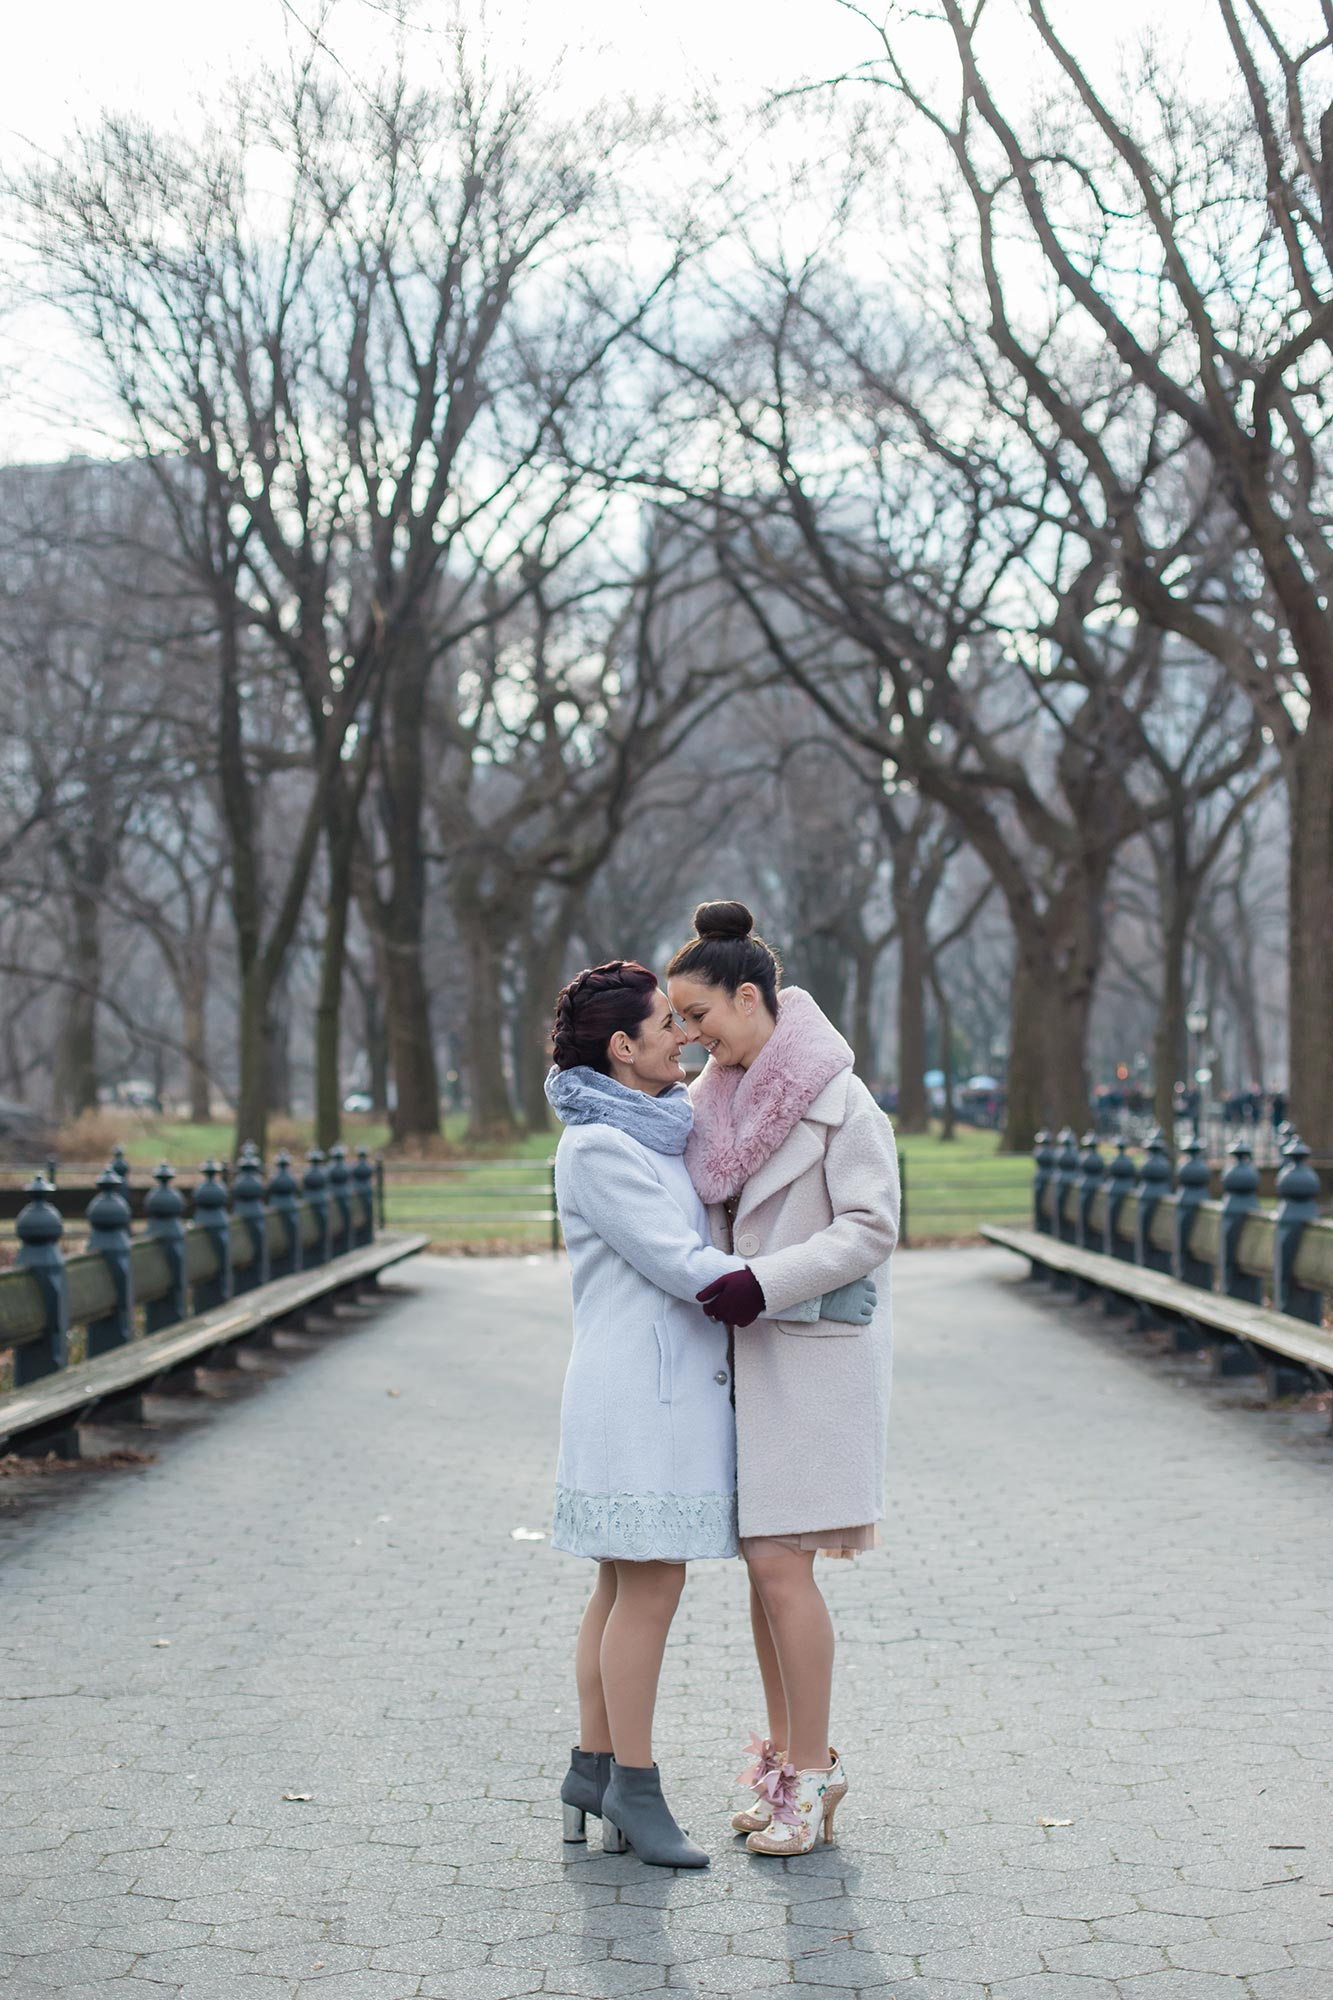 queer irish central park winter elopement kate alison photography embrace on stone path